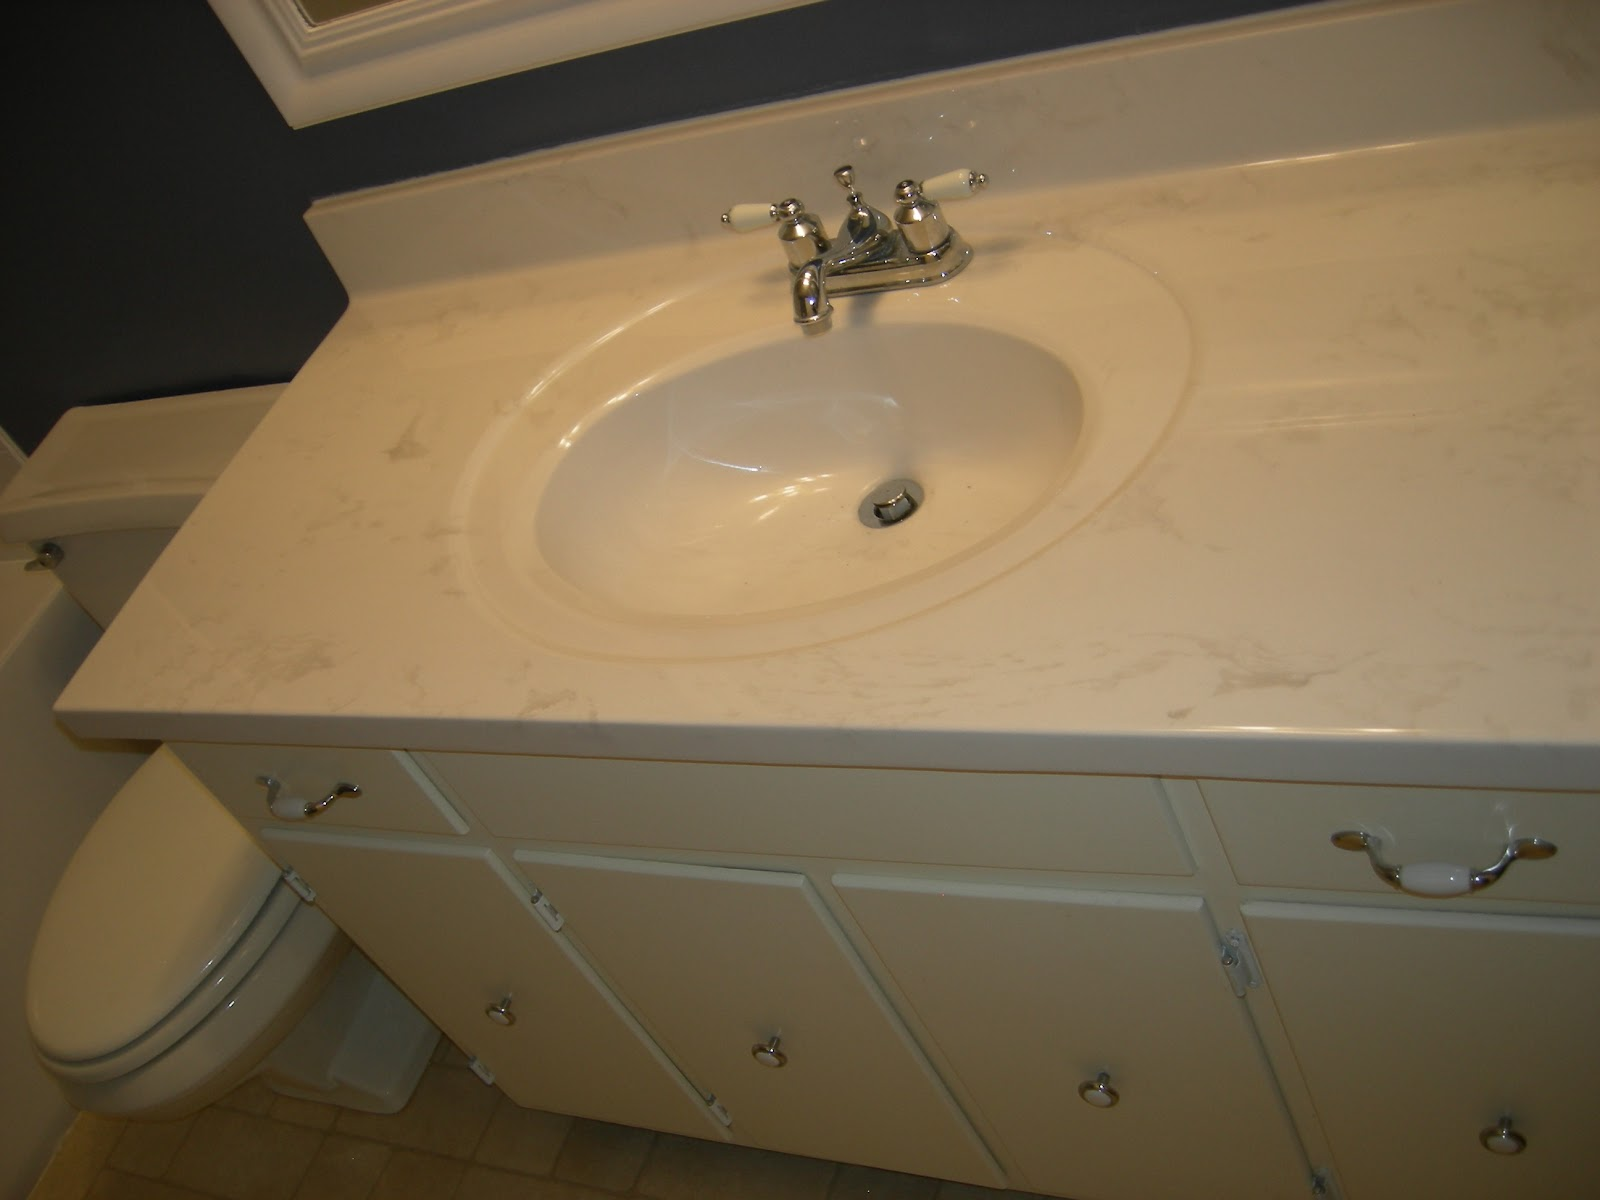 ... have three different types of cultured marble standard cultured marble